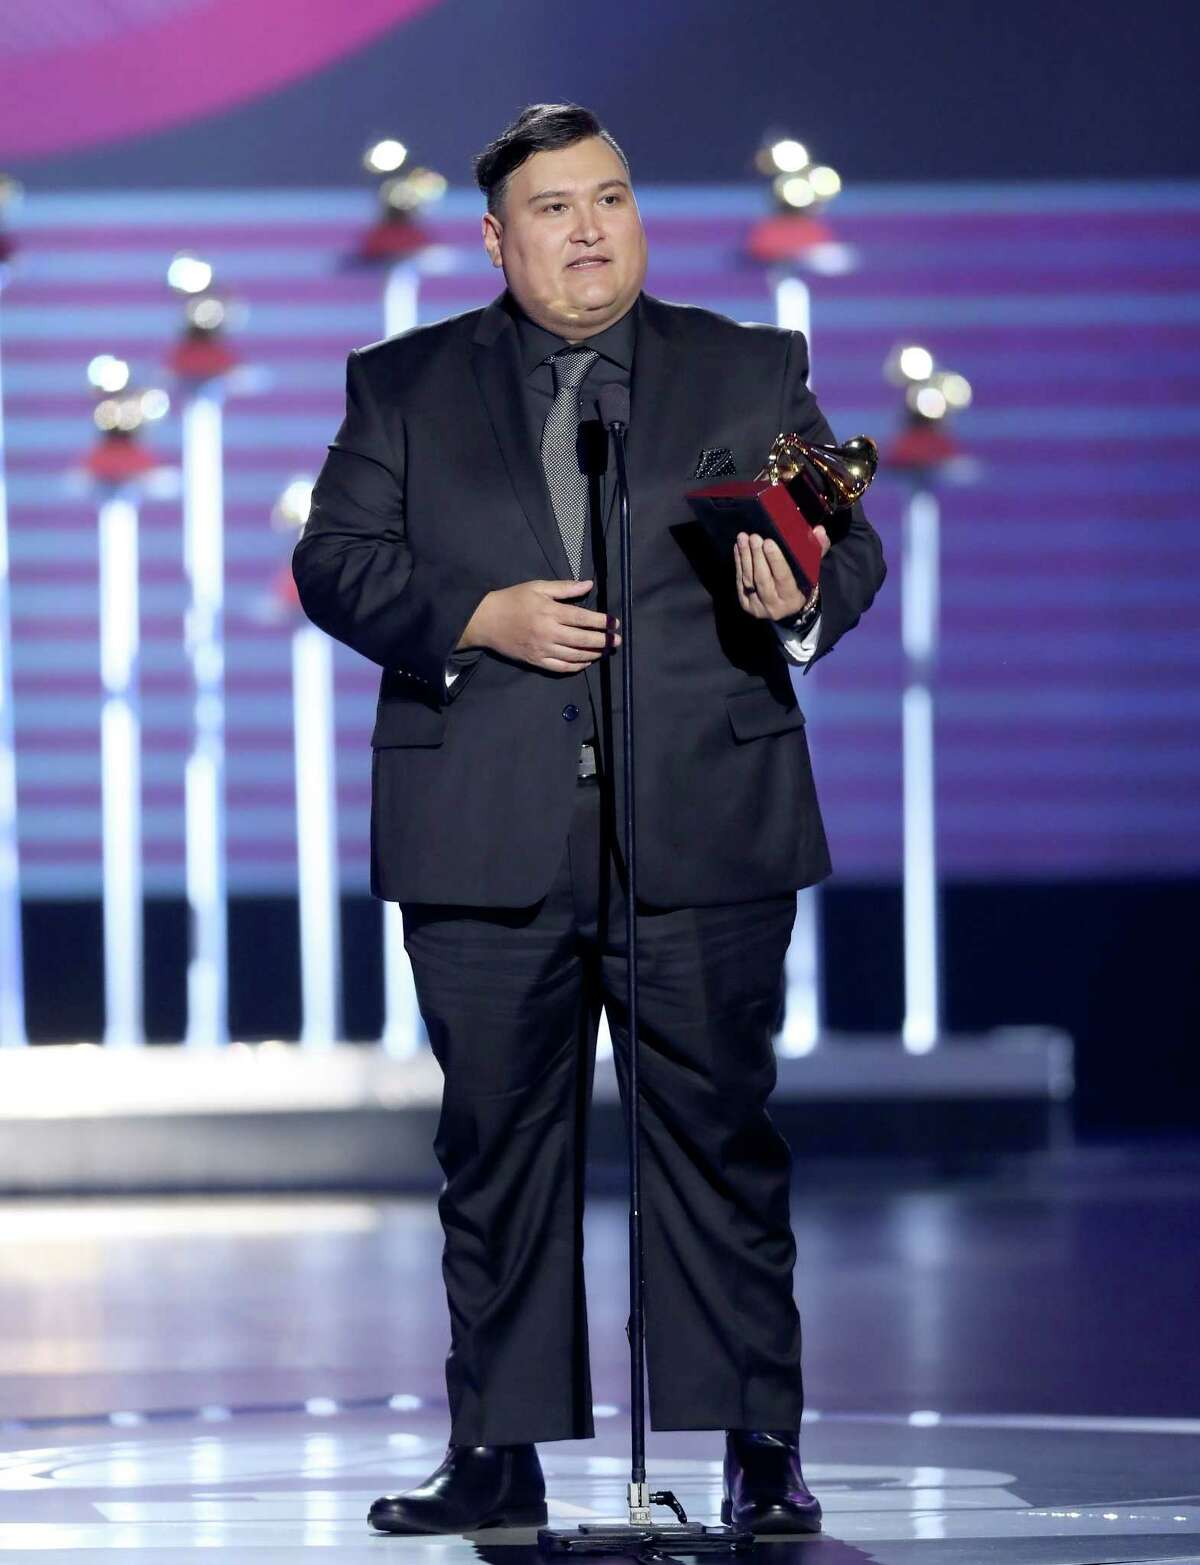 LAS VEGAS, NV - NOVEMBER 16: Juan Trevino accepts the awards for Best Mexican Regional Song for